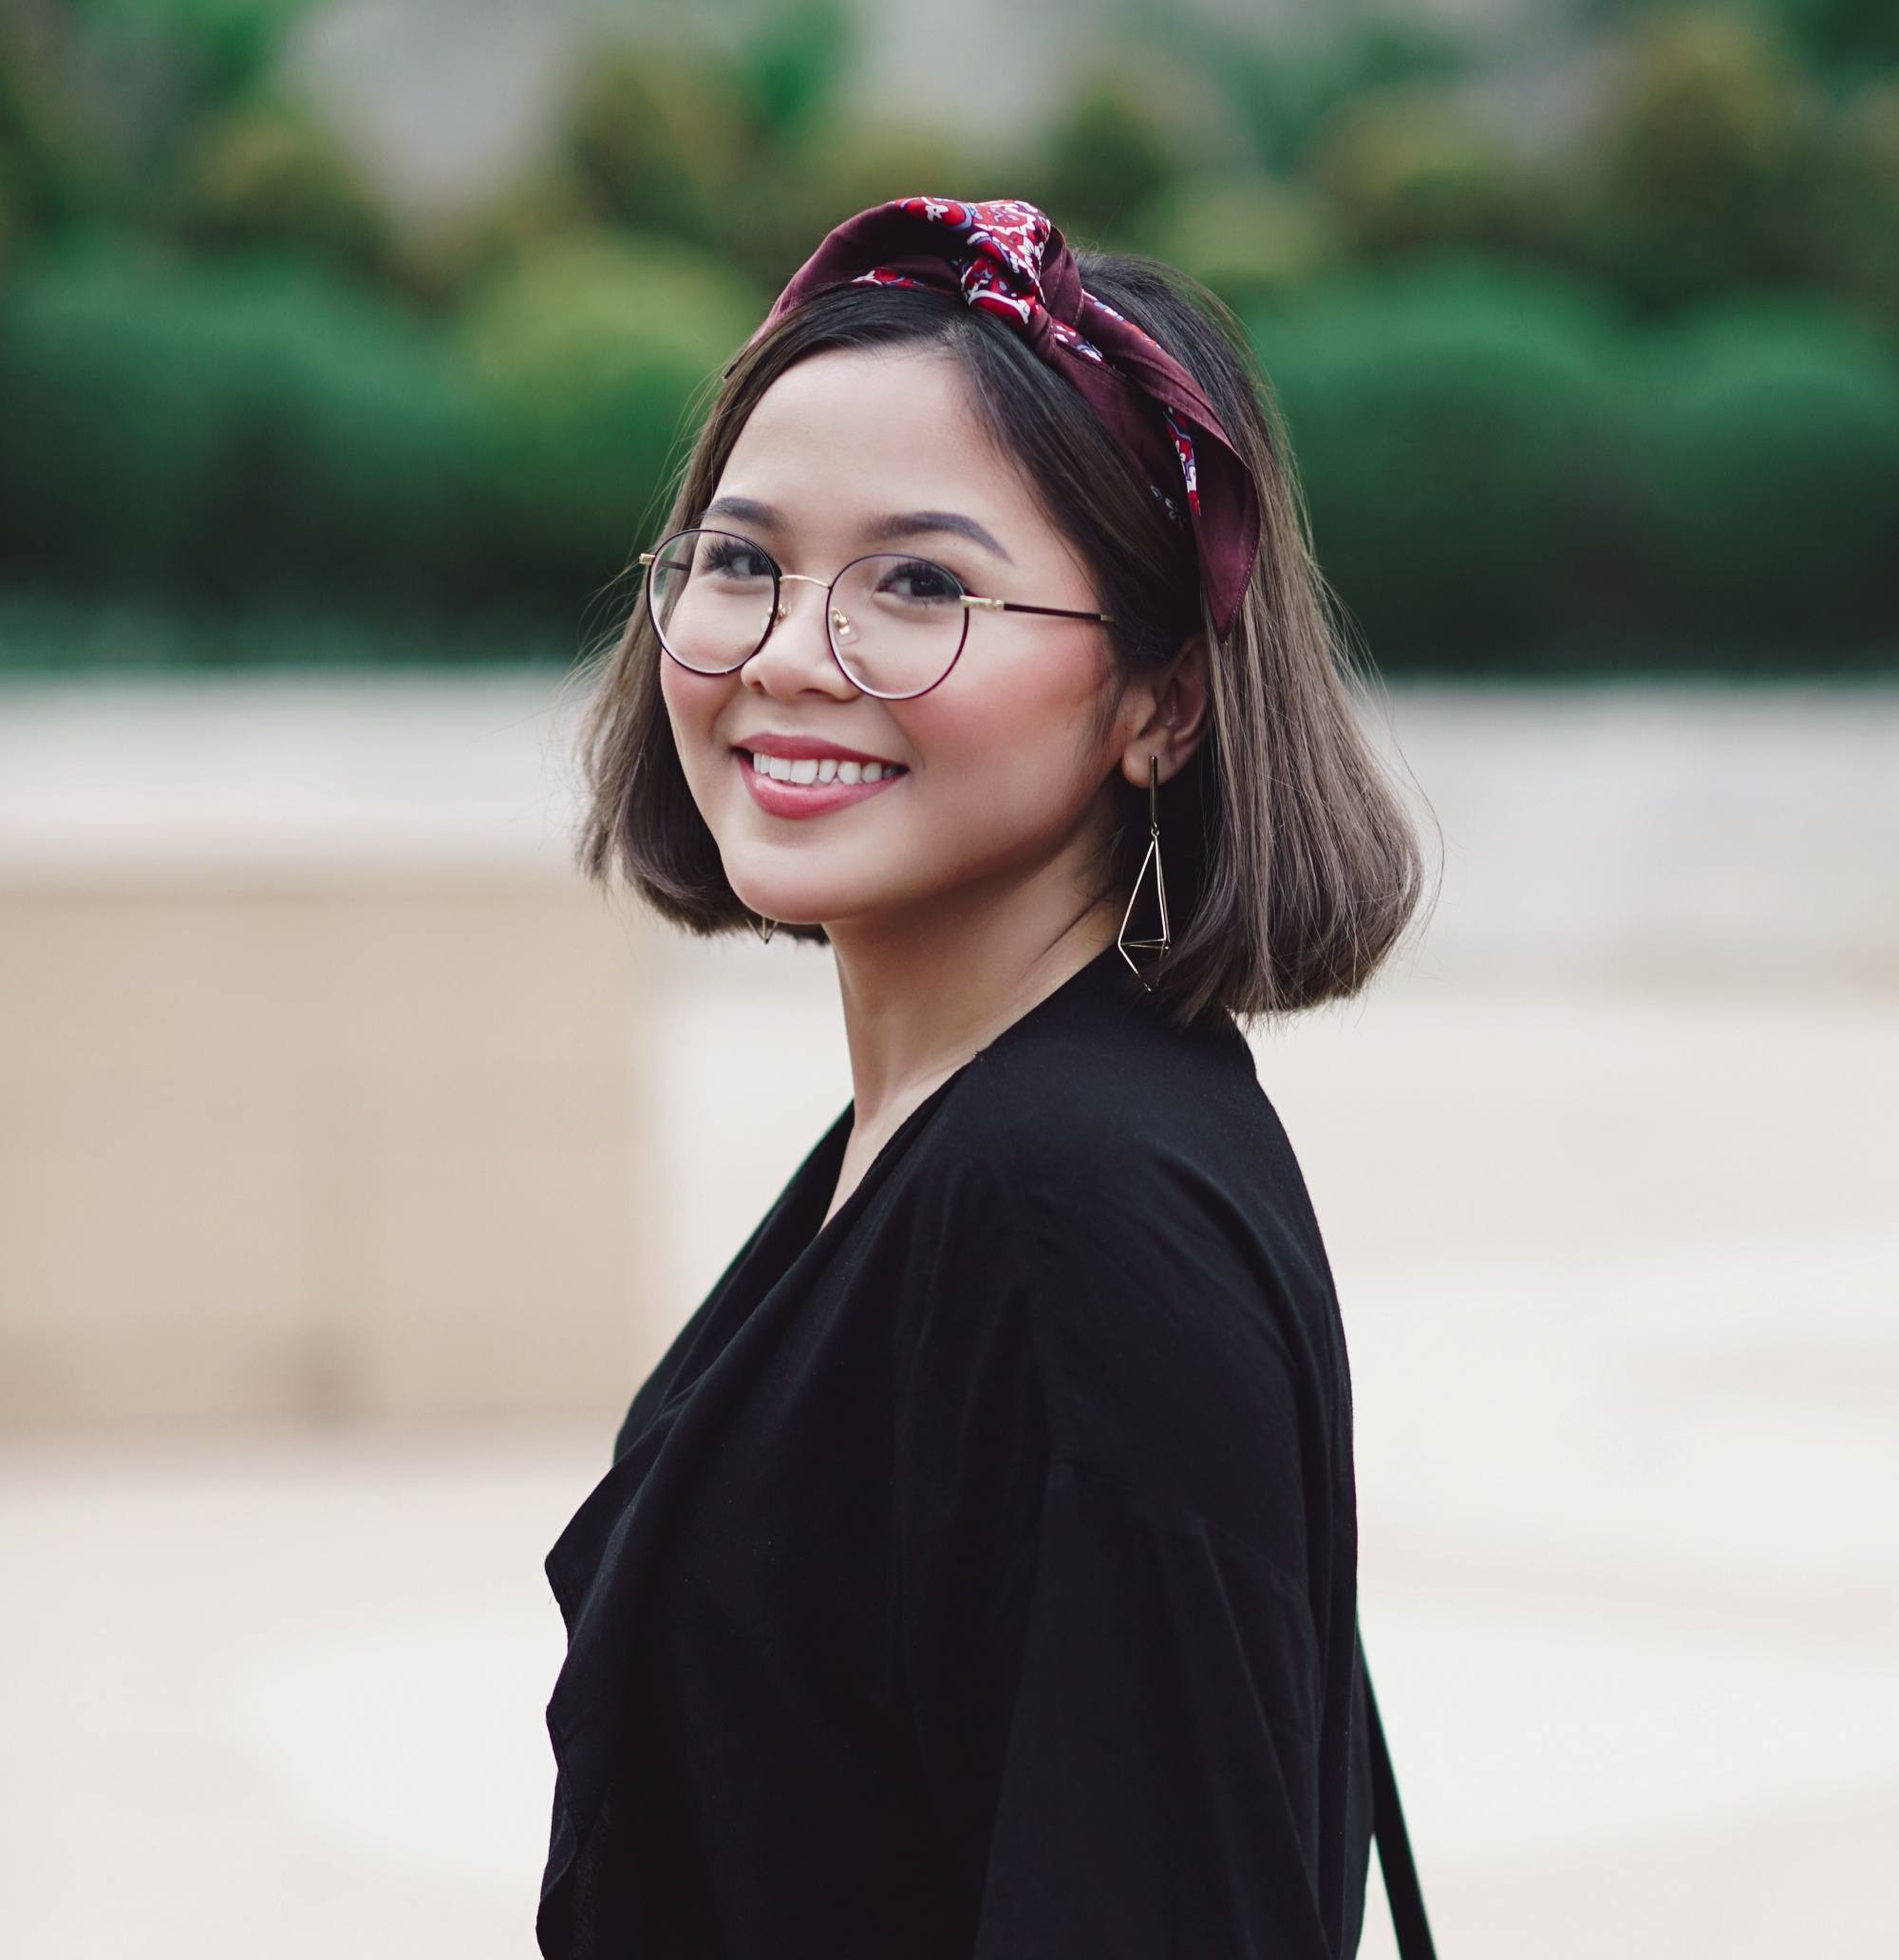 How to style a bob: Asian woman with dark short hair wearing a headband, eyeglasses, and black shirt outdoors